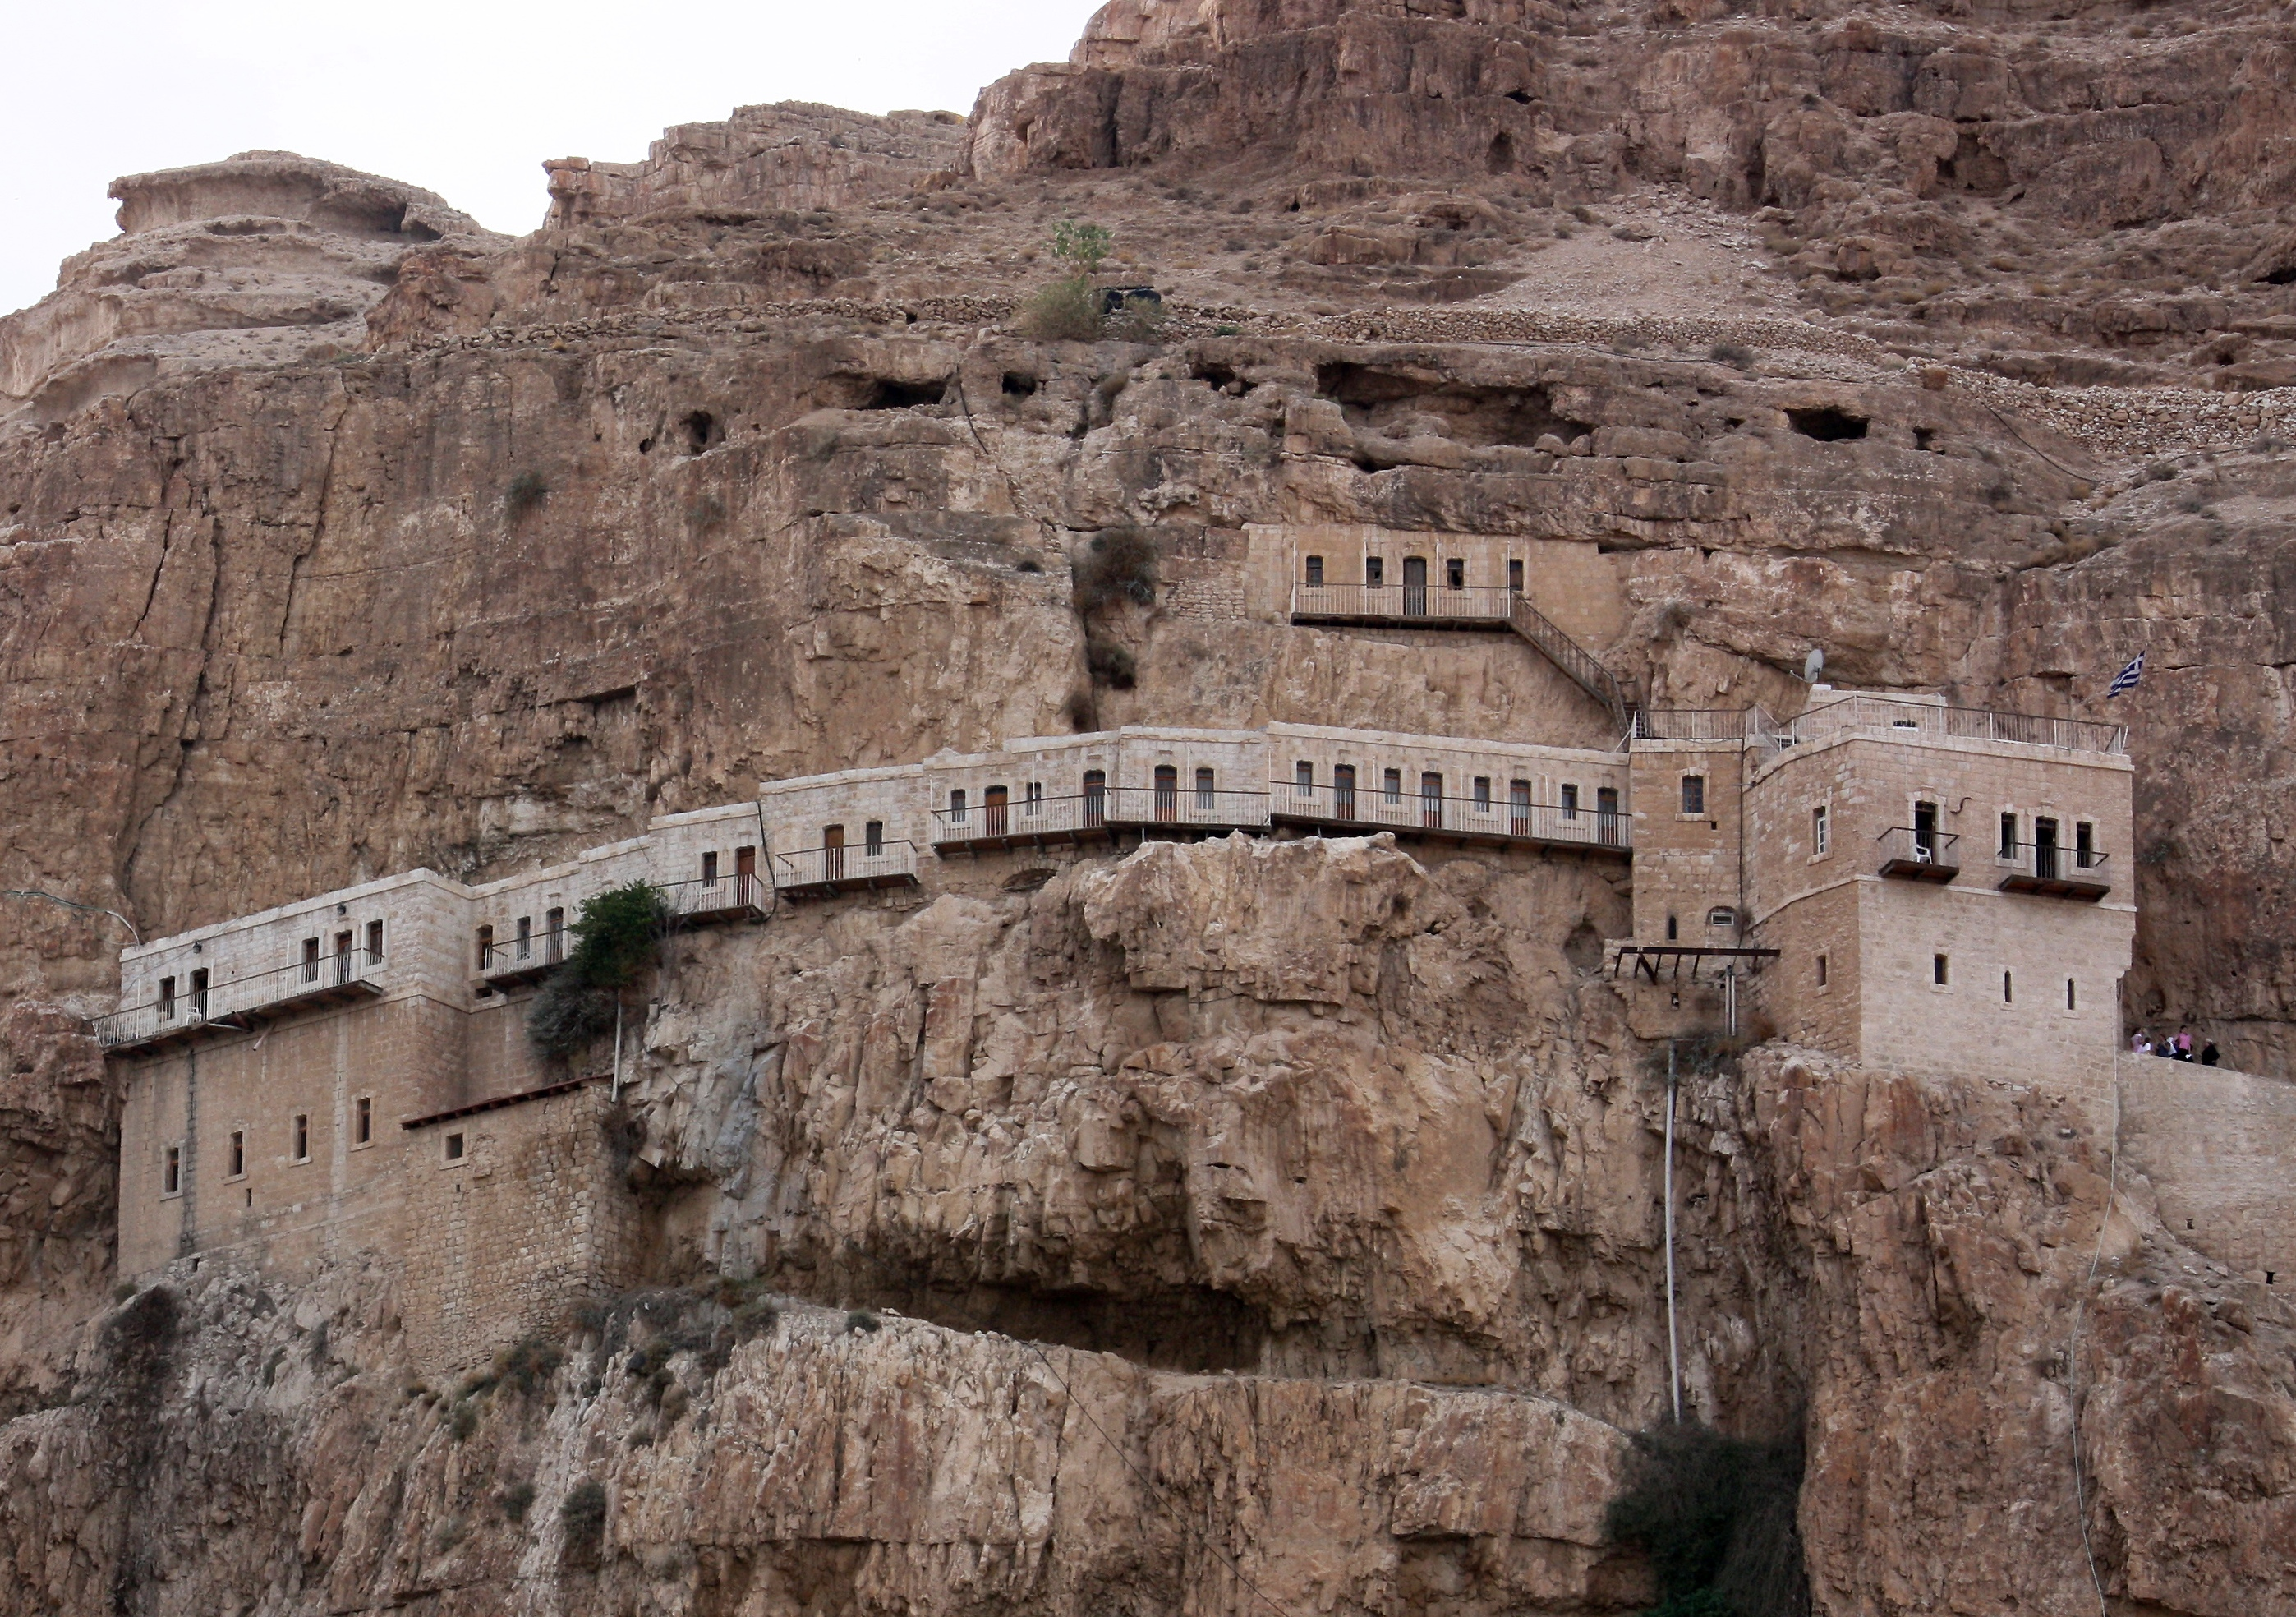 Monastery of the Temptation (wikipedia.org)